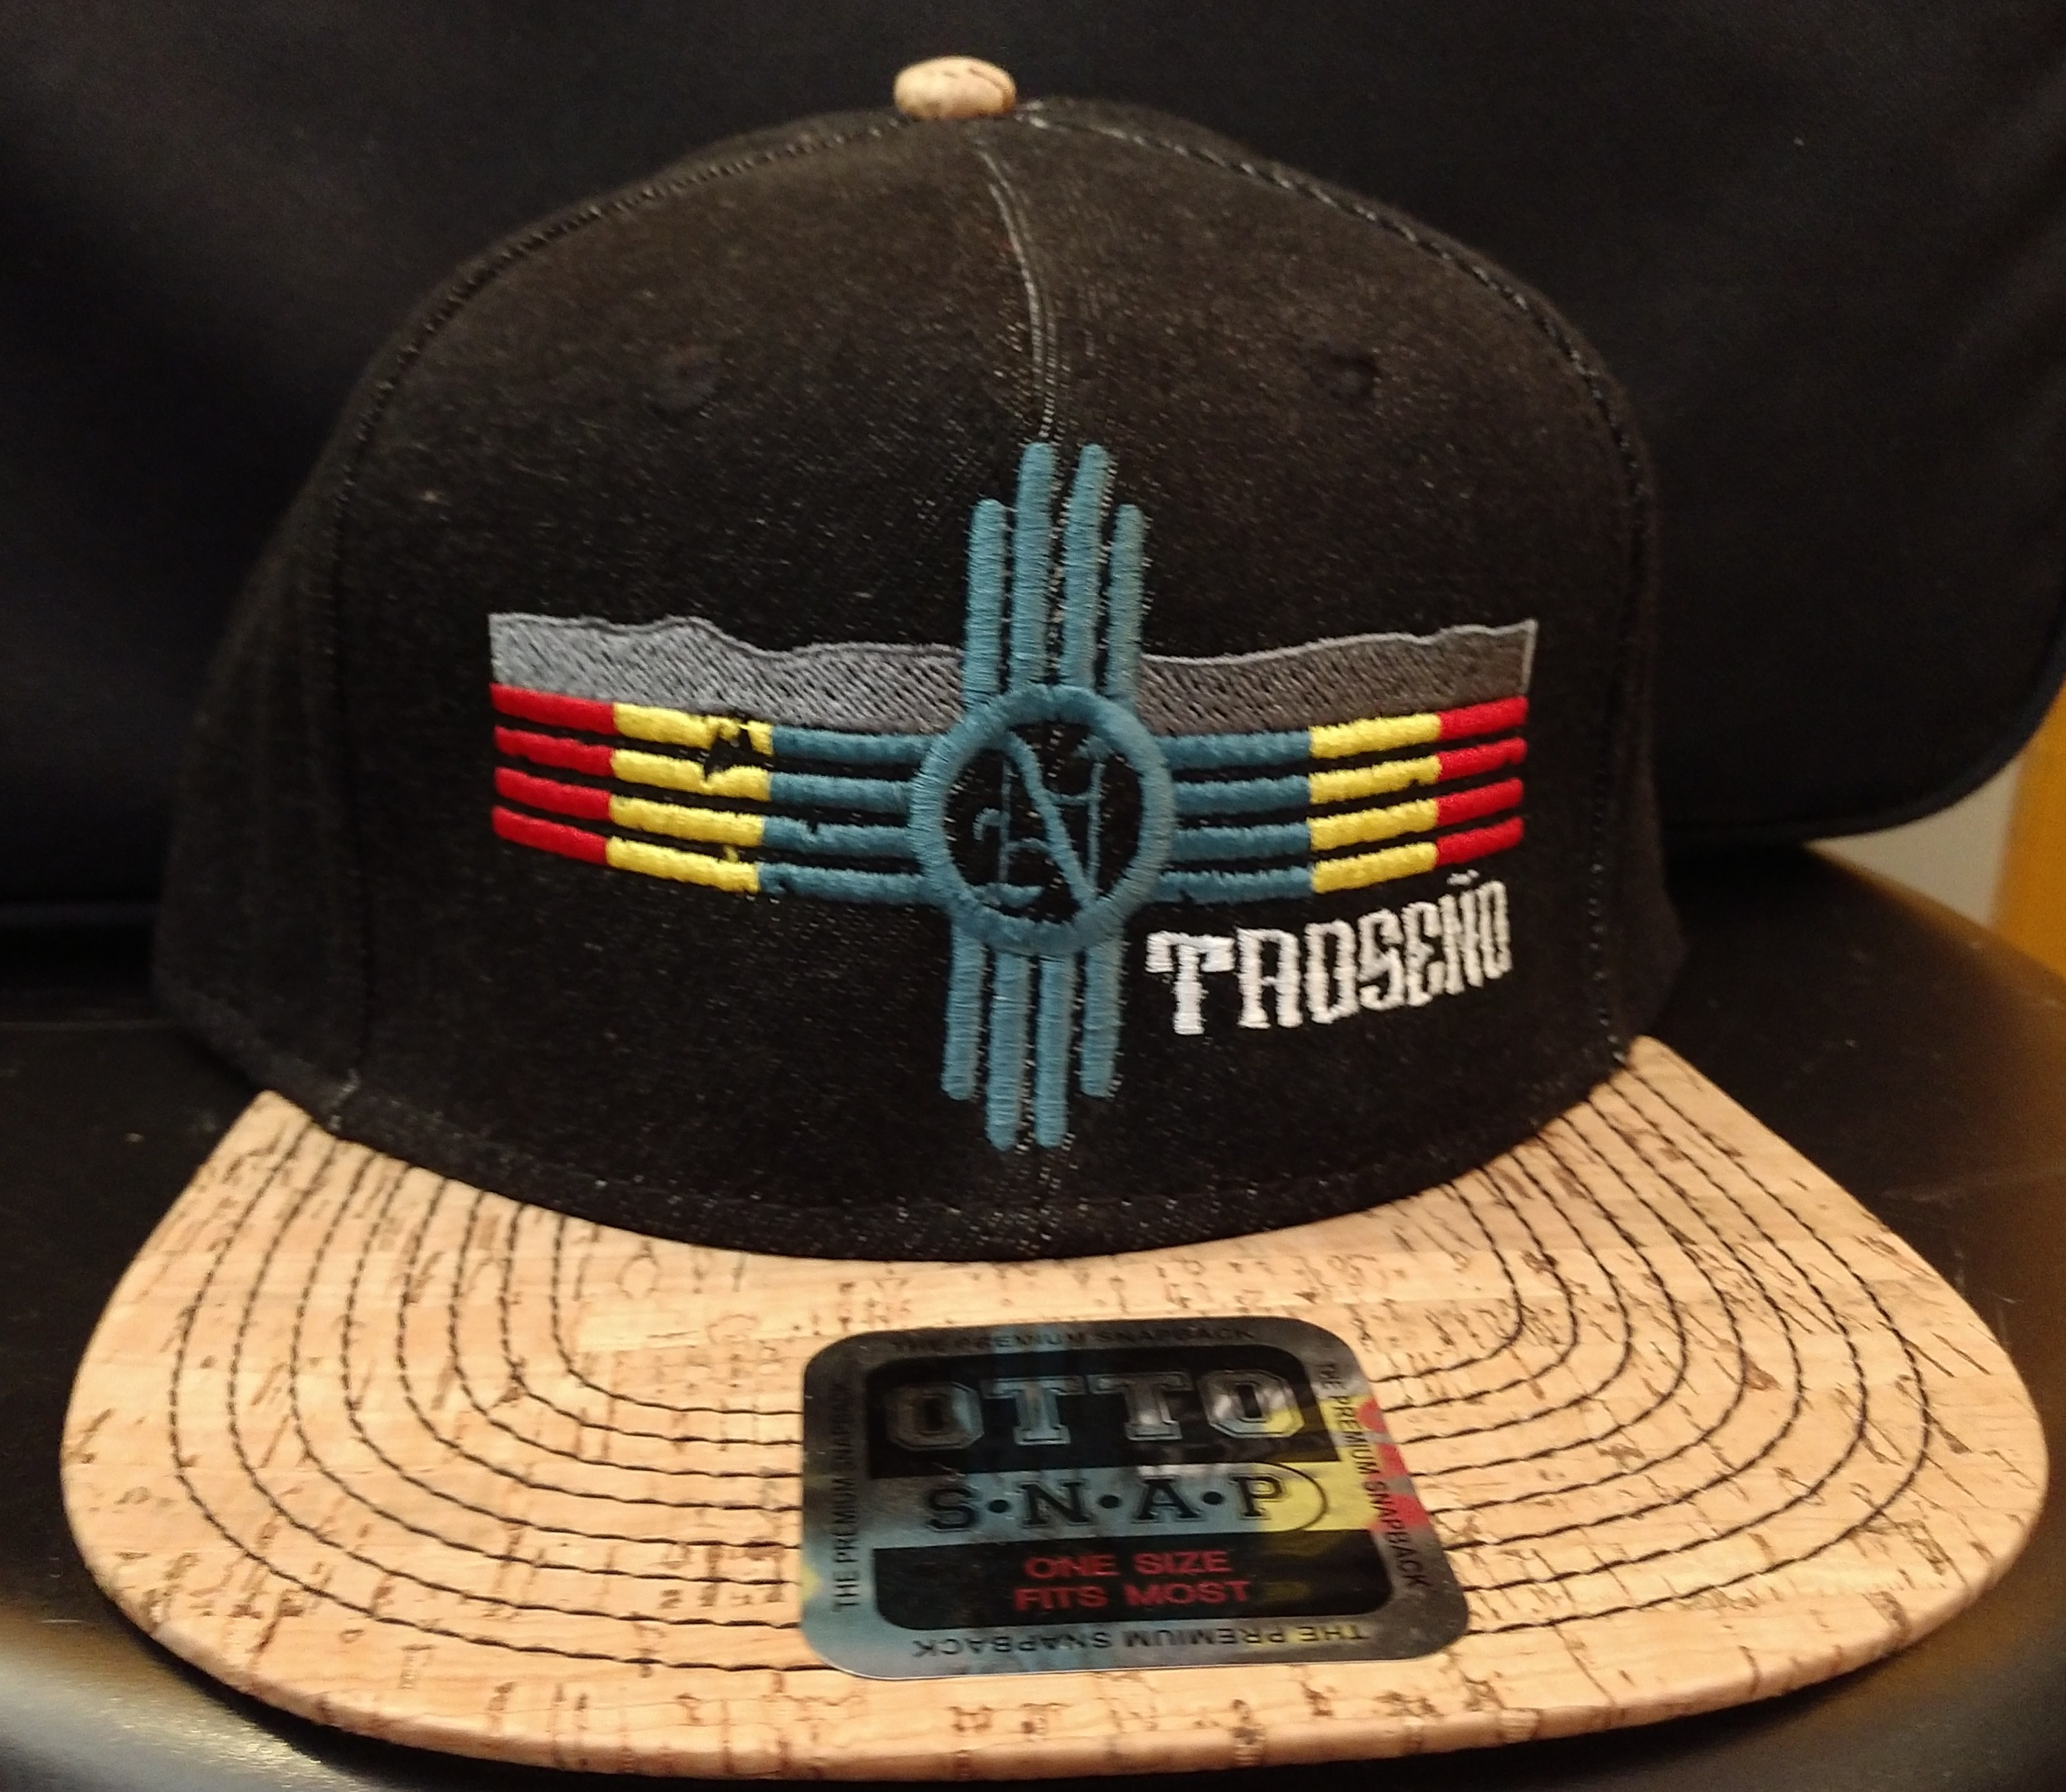 Cork NM Hat Taoseno